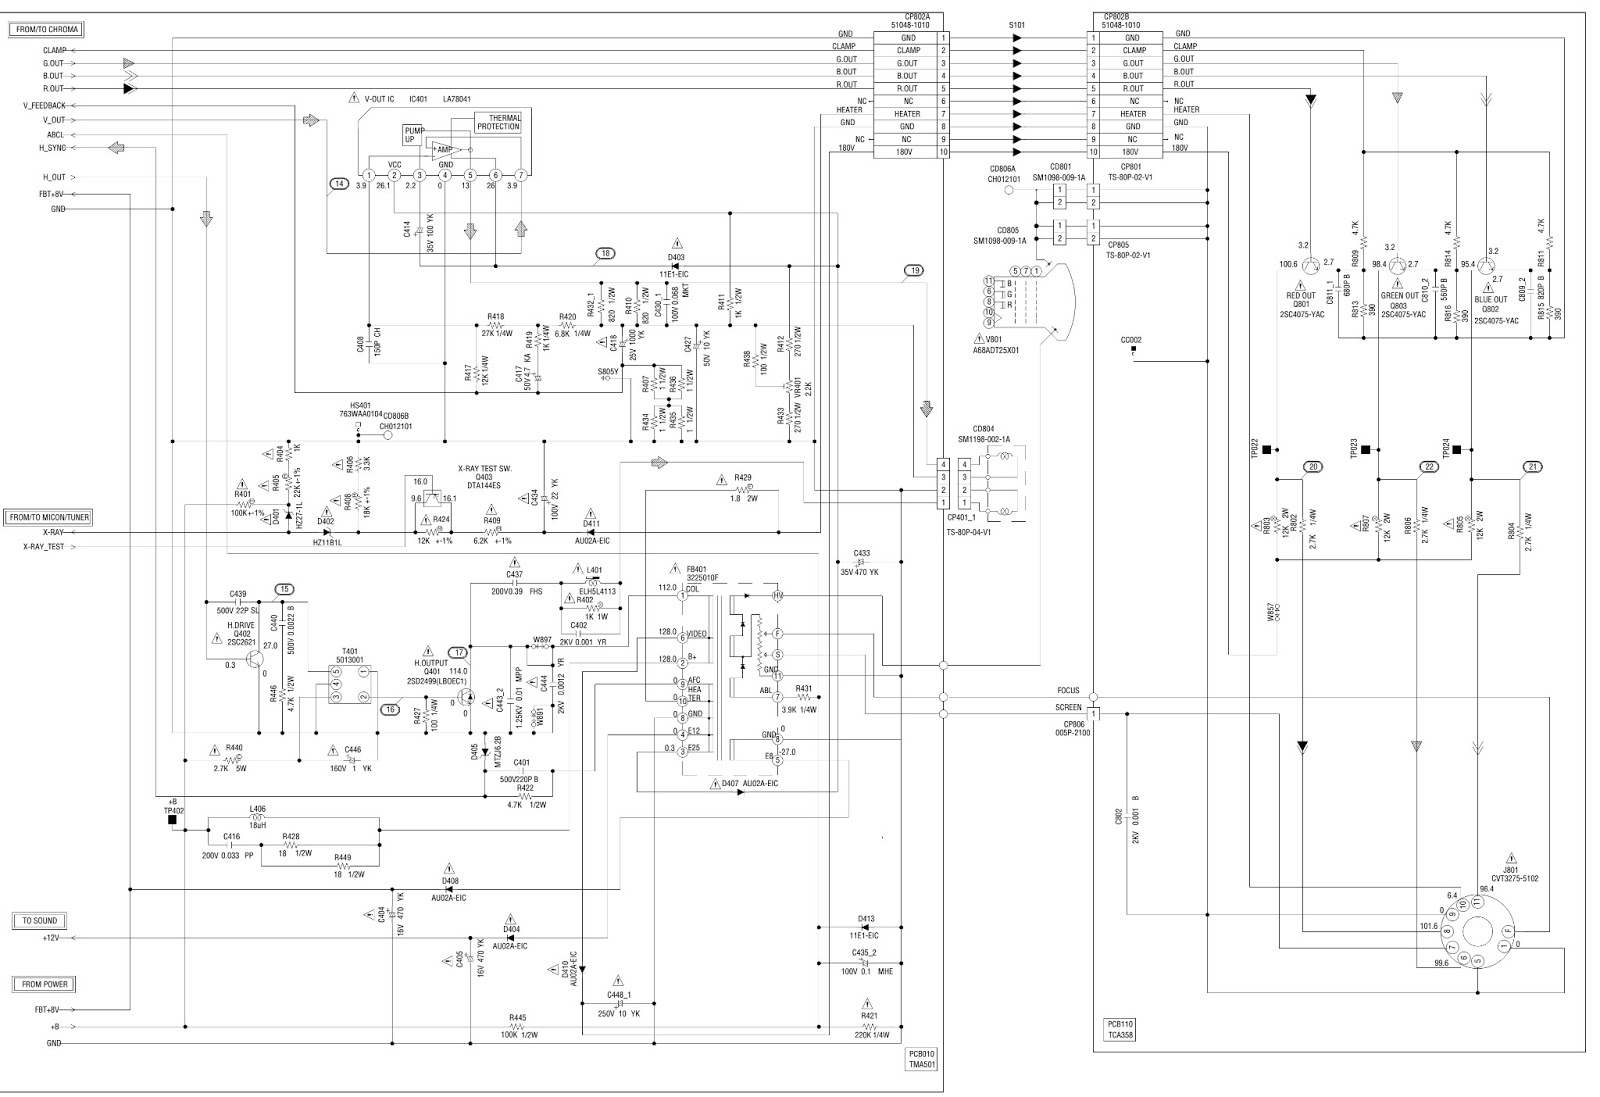 memorex mt2271 -  series-a  - schematic  circuit diagrams  - power - deflection - chroma